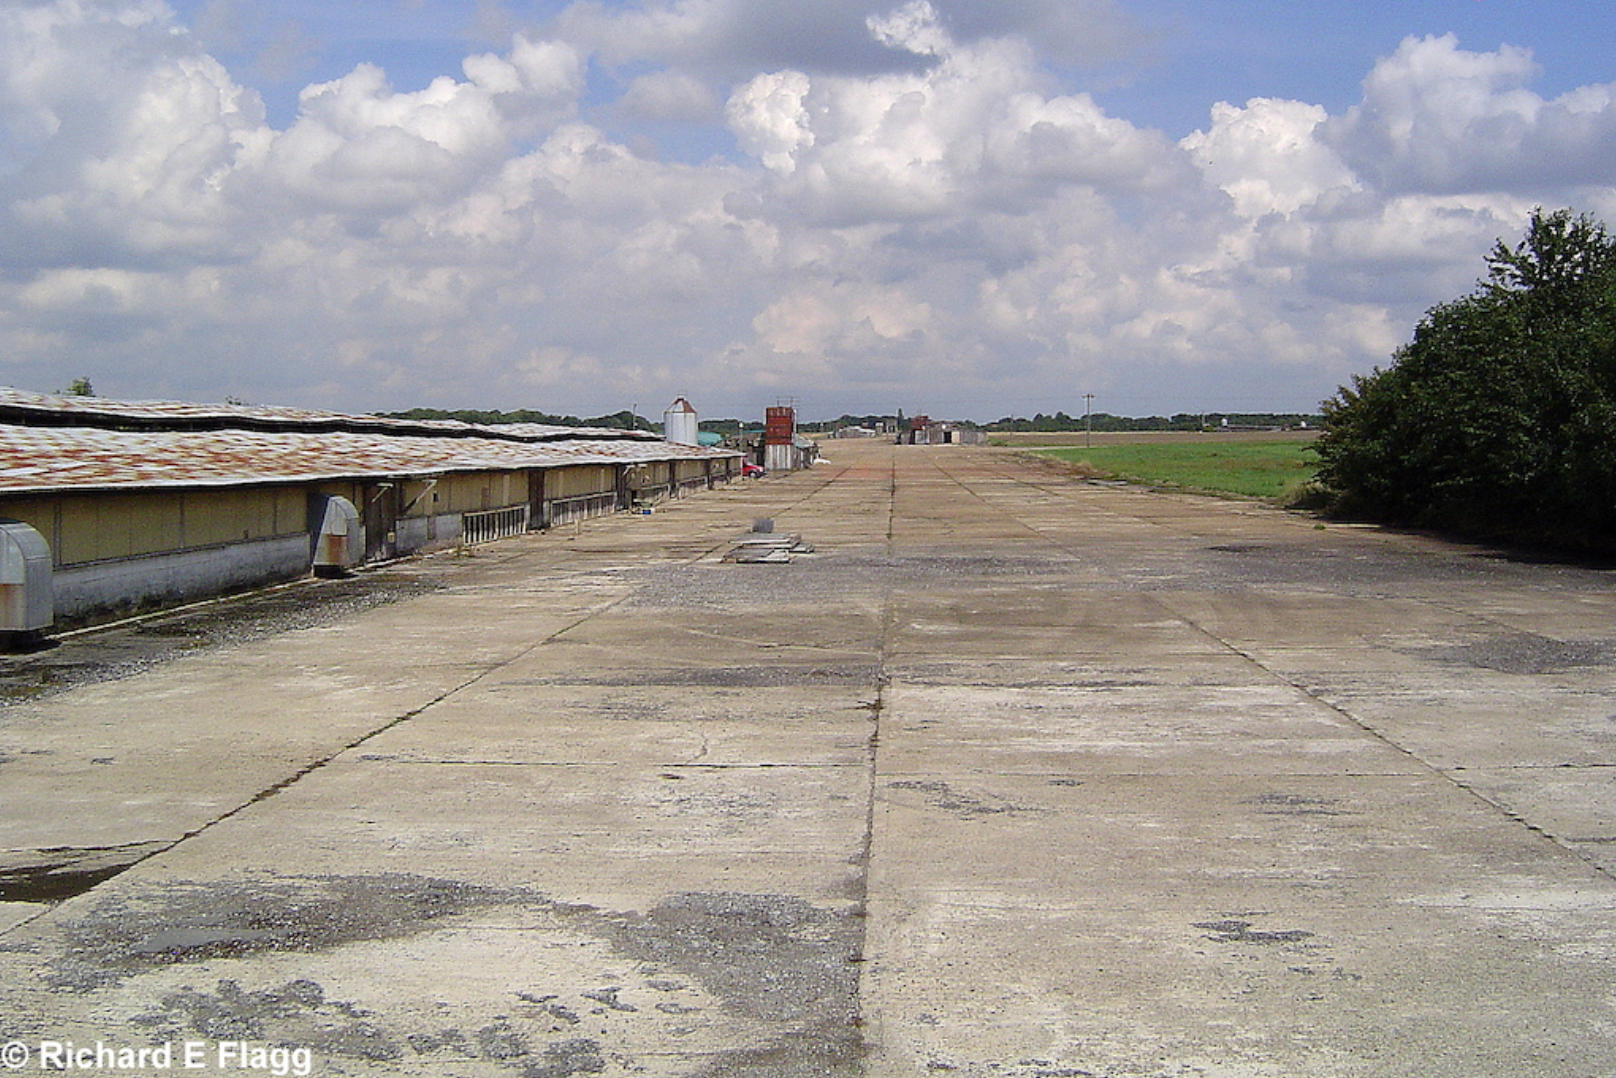 002Runway 04:22. Looking north east from the runway 04 threshold - 17 August 2006.png